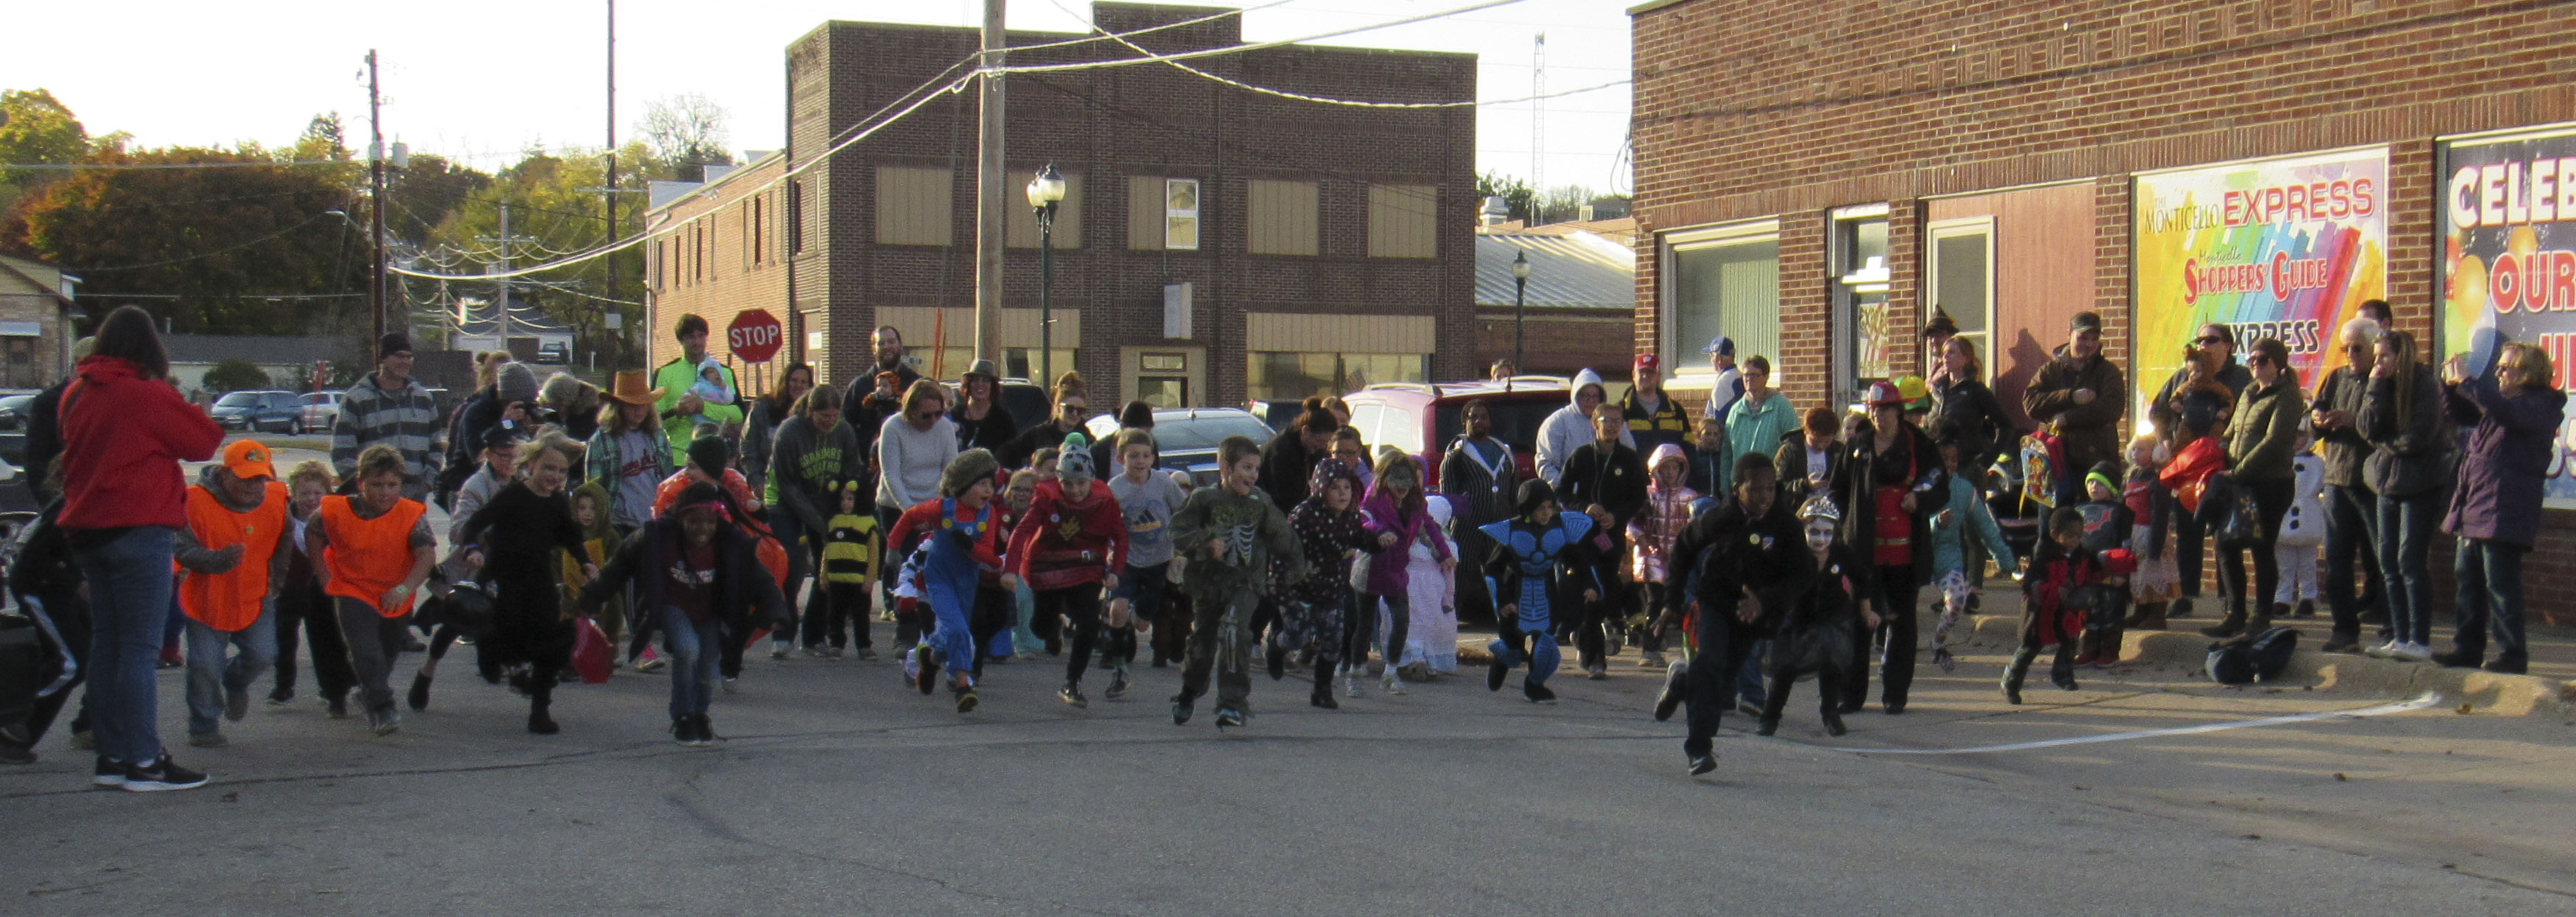 The Monster Mile/Dash was held prior to Treats on the Streets on Oct. 24. Kids of all ages dressed in their Halloween costumes took part in the race. (Photos by Kim Brooks)